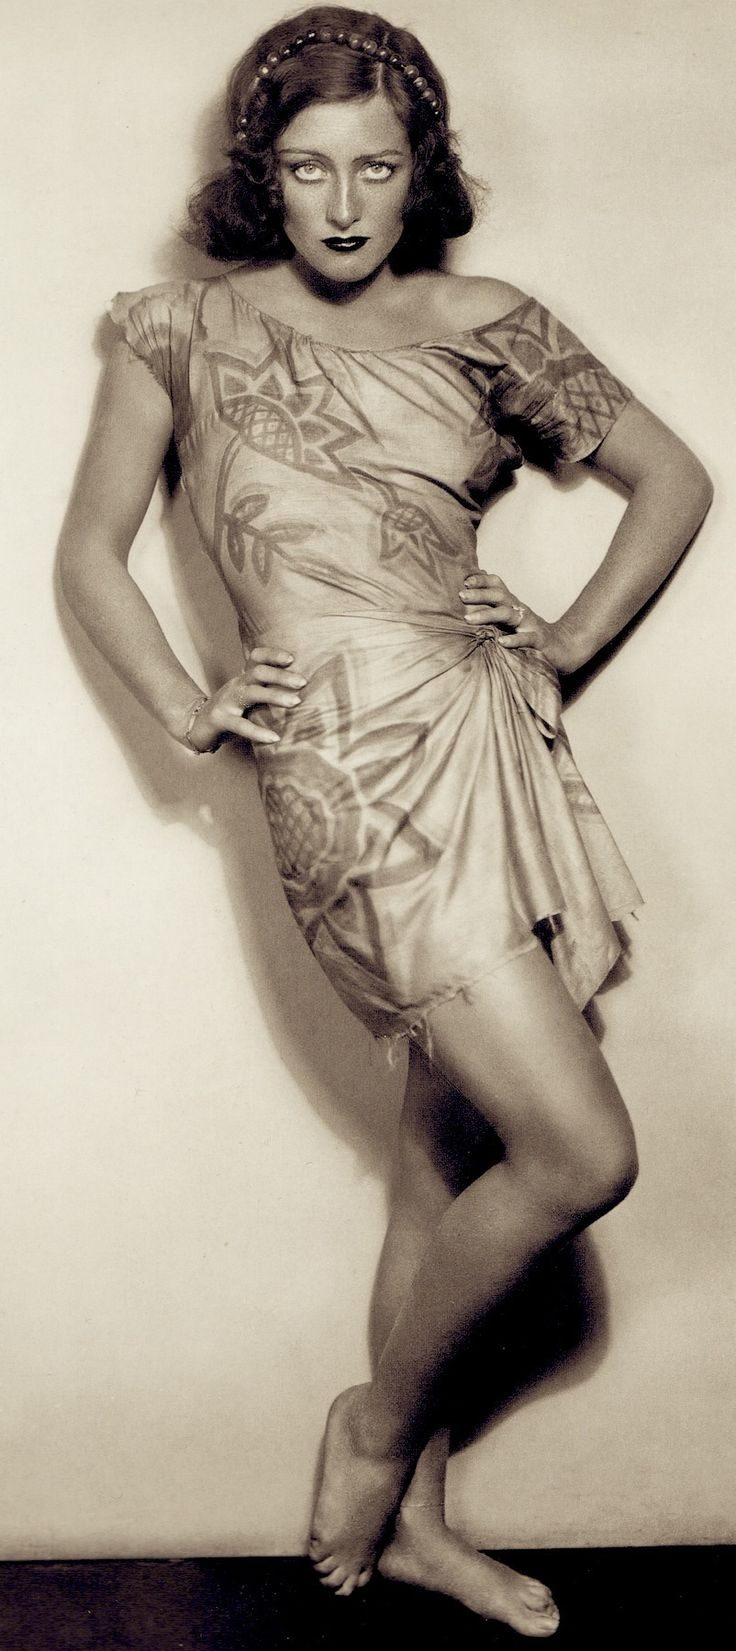 JOAN CRAWFORD 1930 from Joan Crawford The Enduring Star by Peter Cowie. (minkshmink)